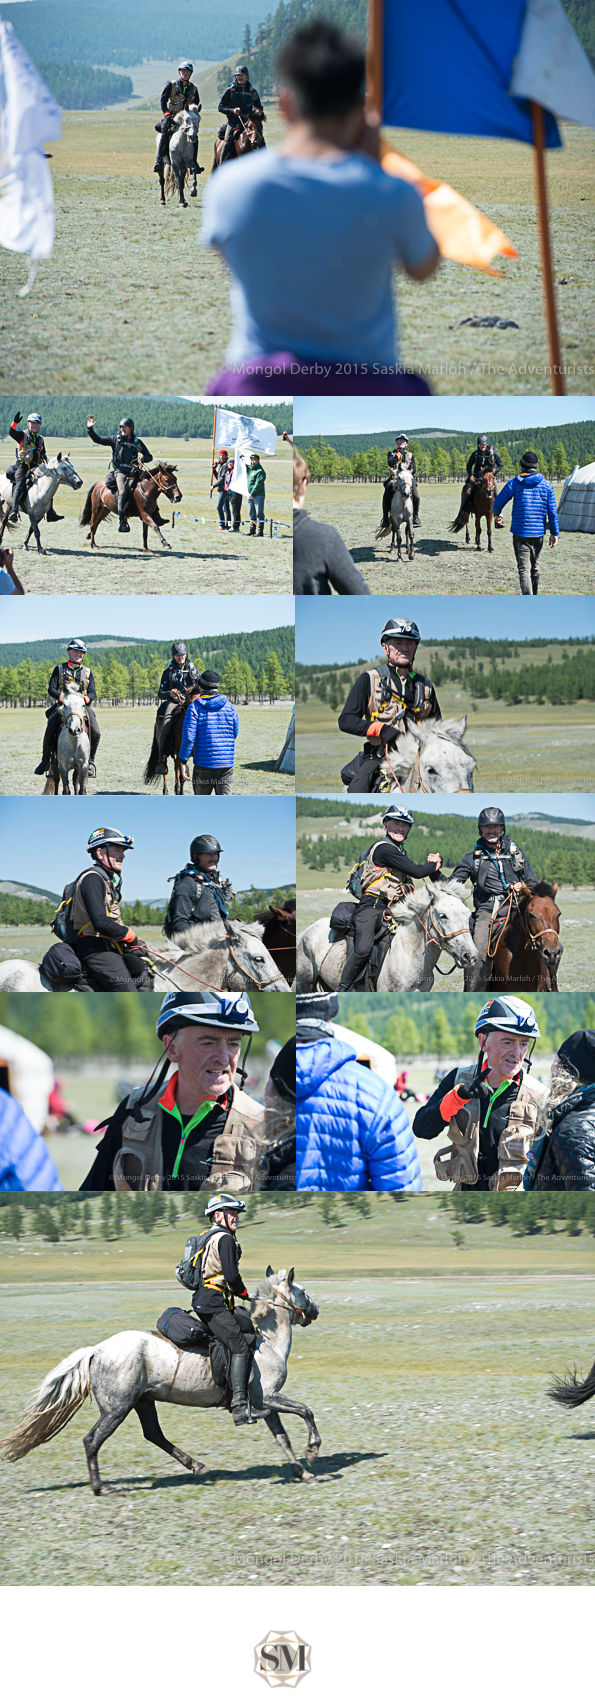 Paddy Woods, place 10 of the Mongol Derby 2015 photos by Saskia Marloh